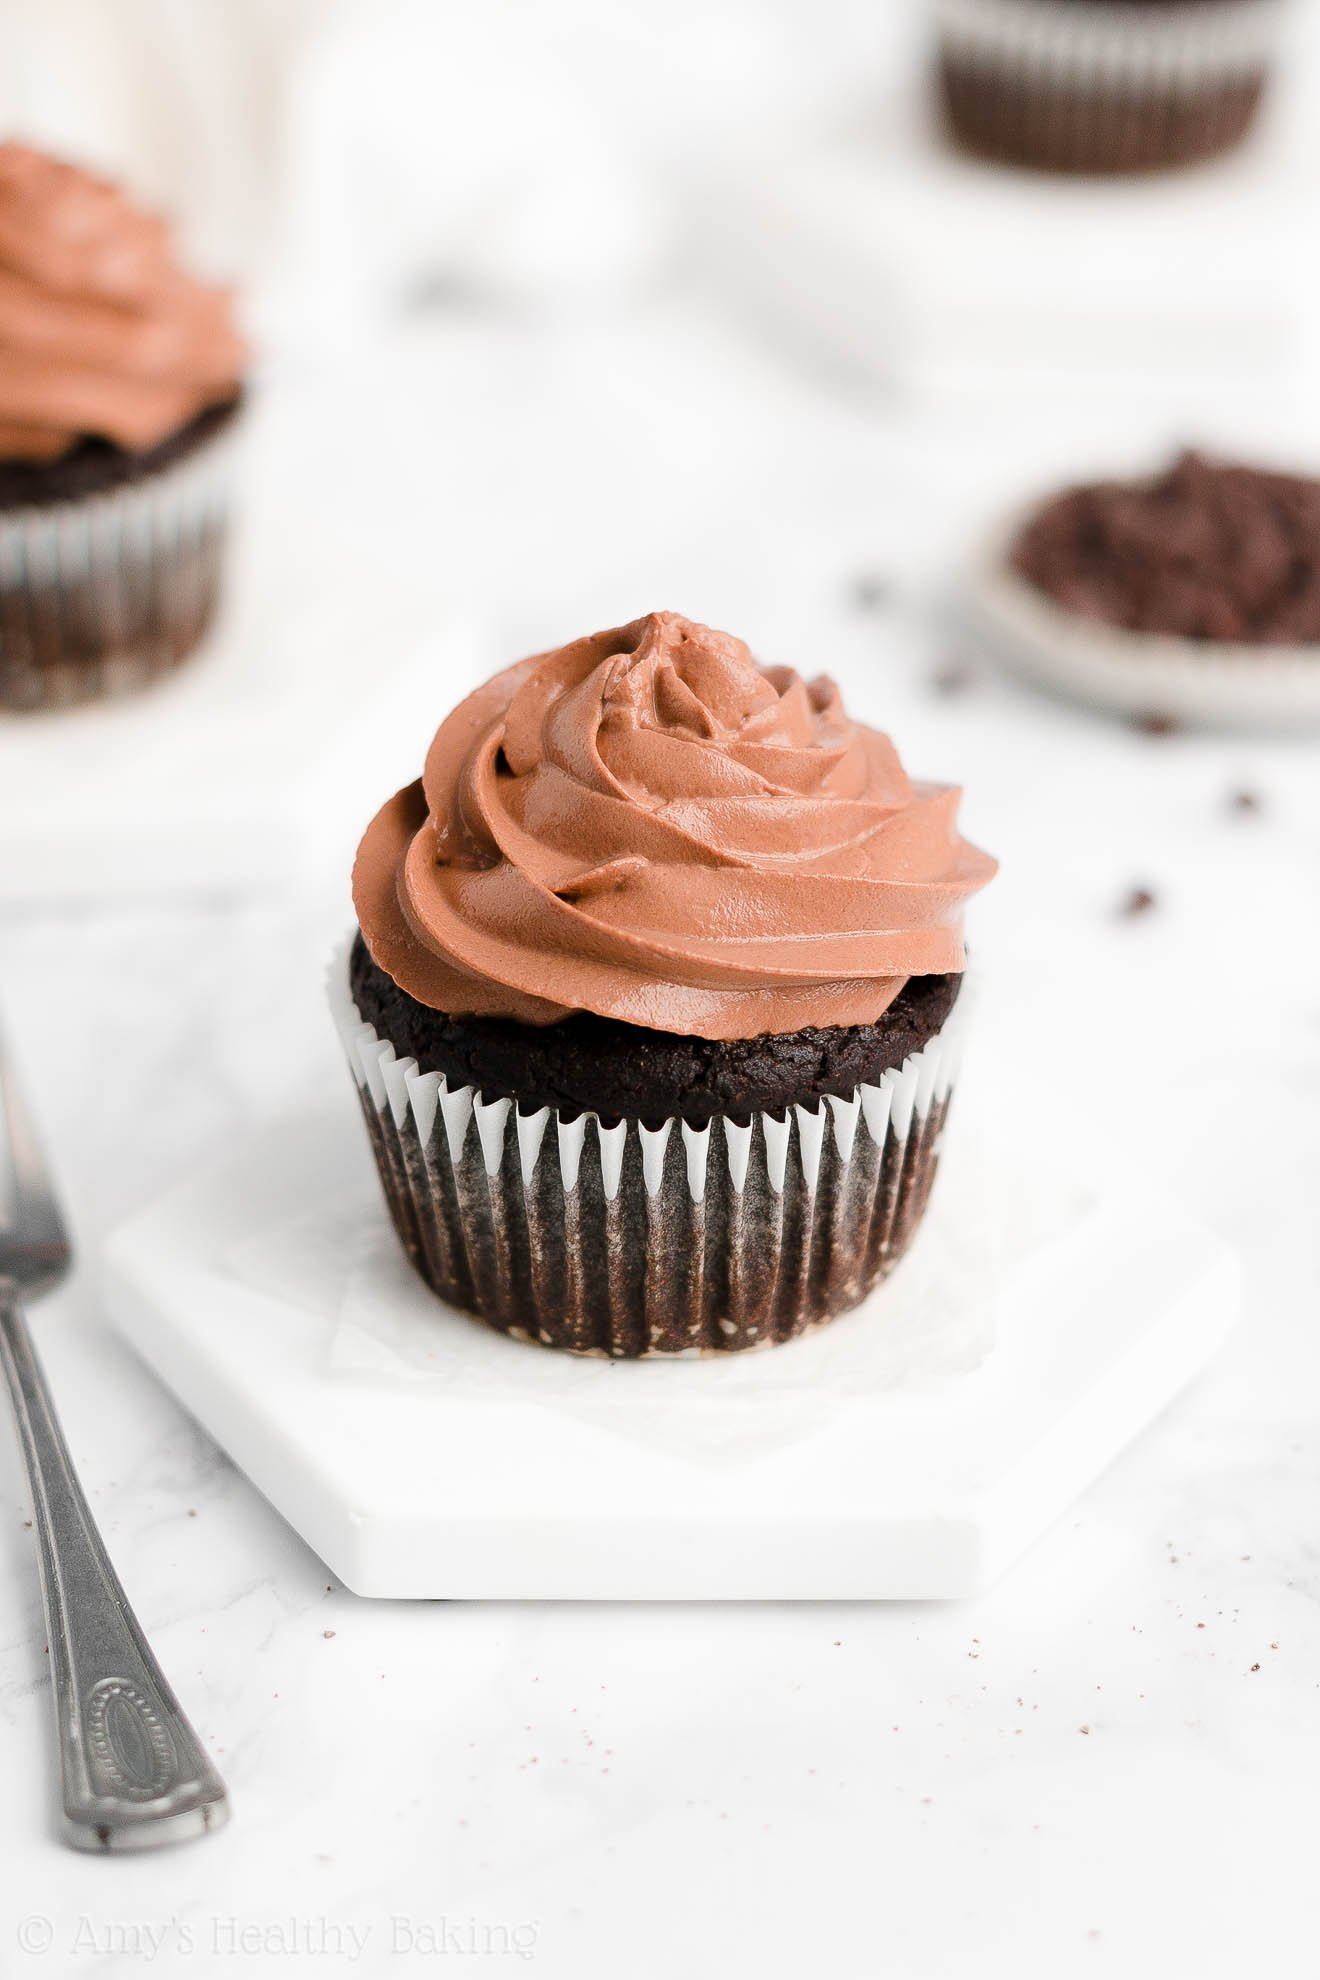 Best Easy Healthy Whole Wheat No Sugar Moist One-Bowl Chocolate Cupcakes